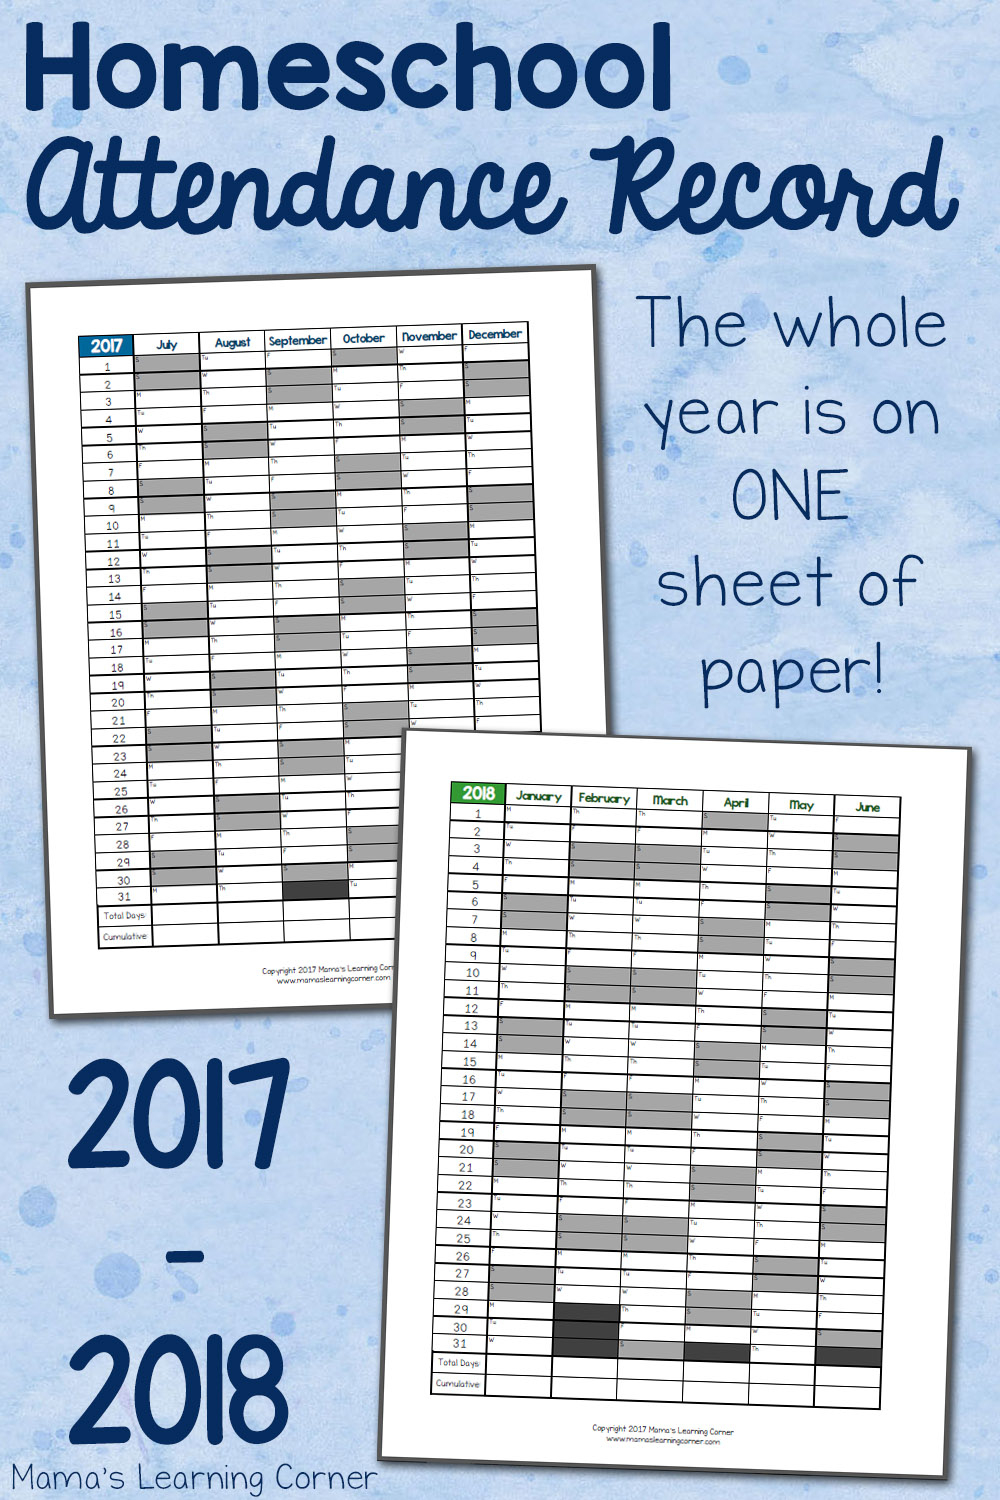 Simple Homeschool Attendance Record 2017-2018 - Mamas Learning Corner - Free Printable Attendance Sheets For Homeschool